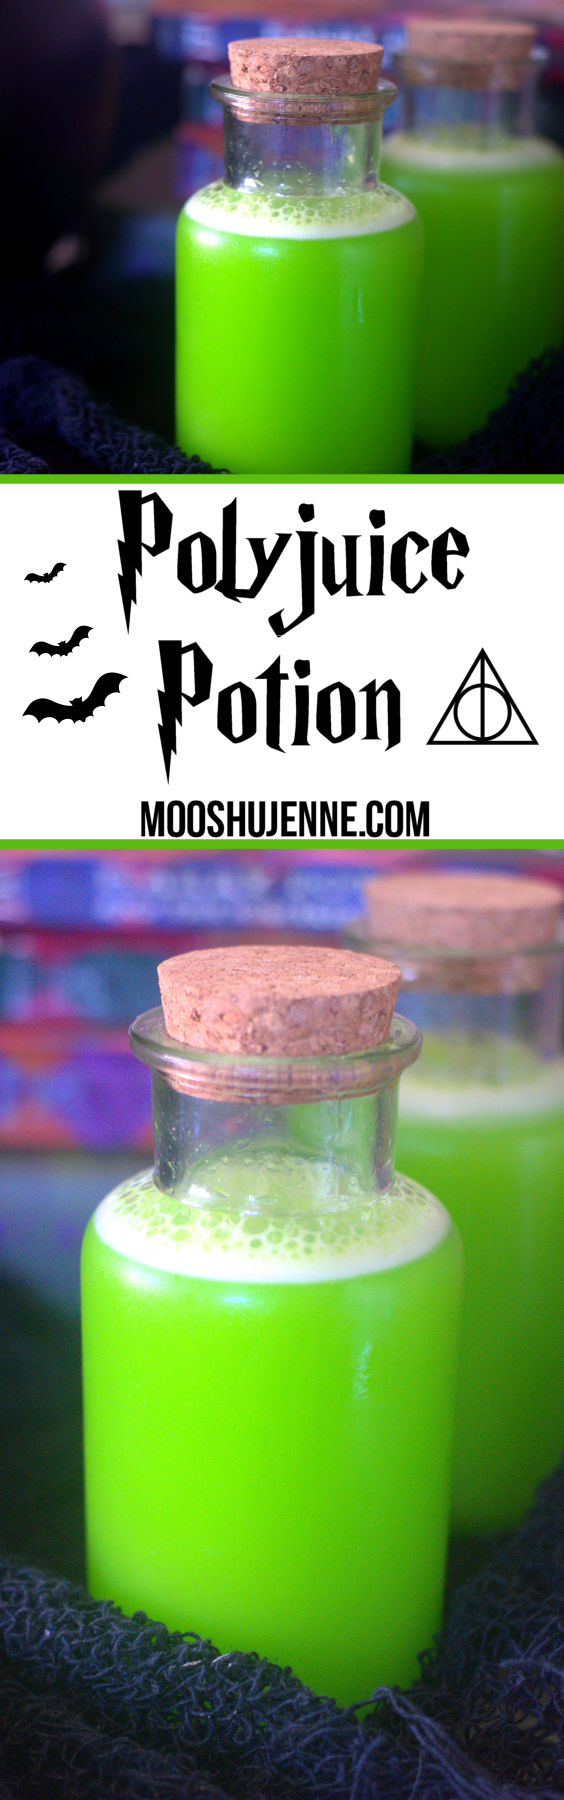 Polyjuice Potion drink from the Harry Potter series. So in light of the movie approach I thought I would bring you, my readers, a Harry Potter favorite that good ole' Poly Juice Potion.